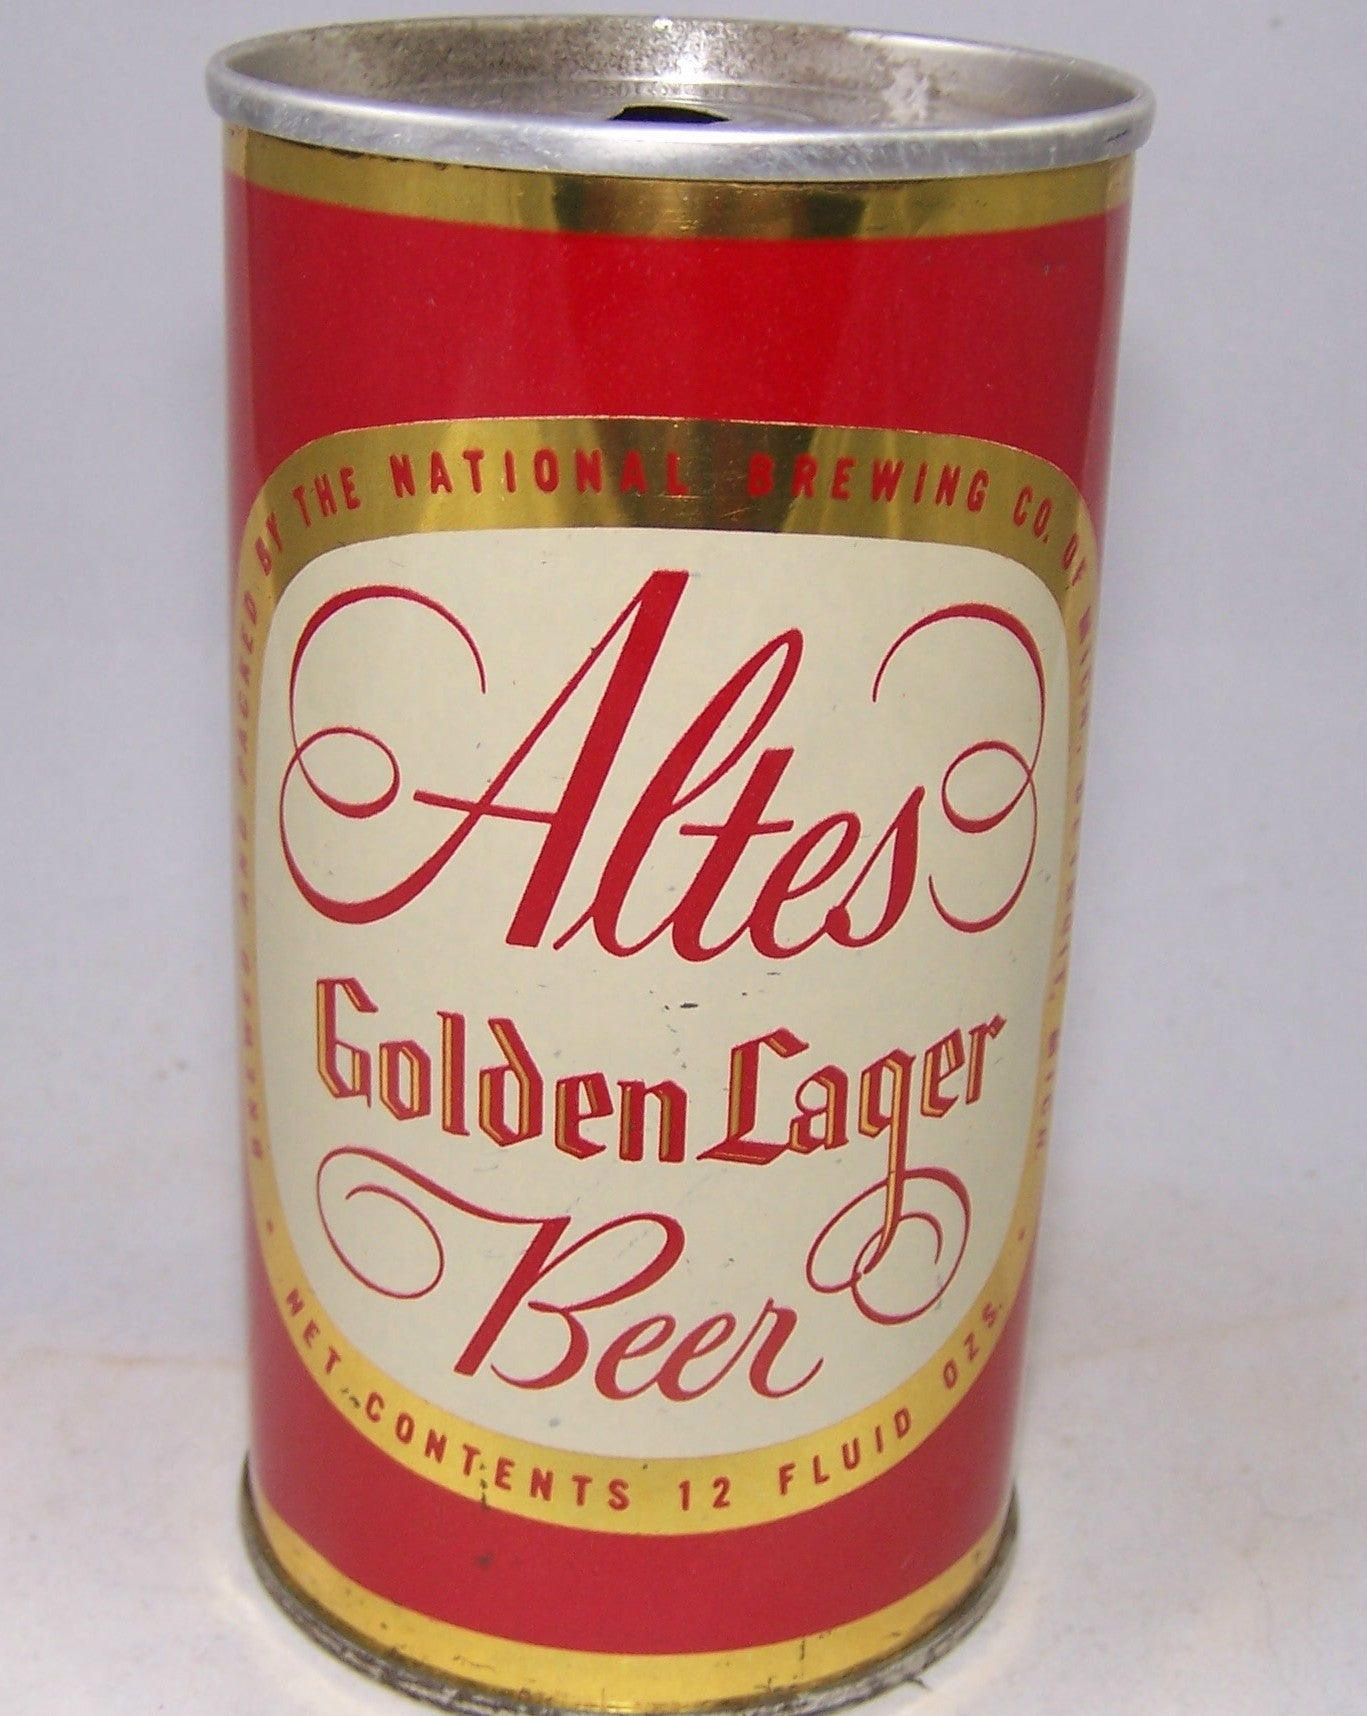 Altes Golden Lager Beer, USBC II 33-04, Grade 1 to 1/1+